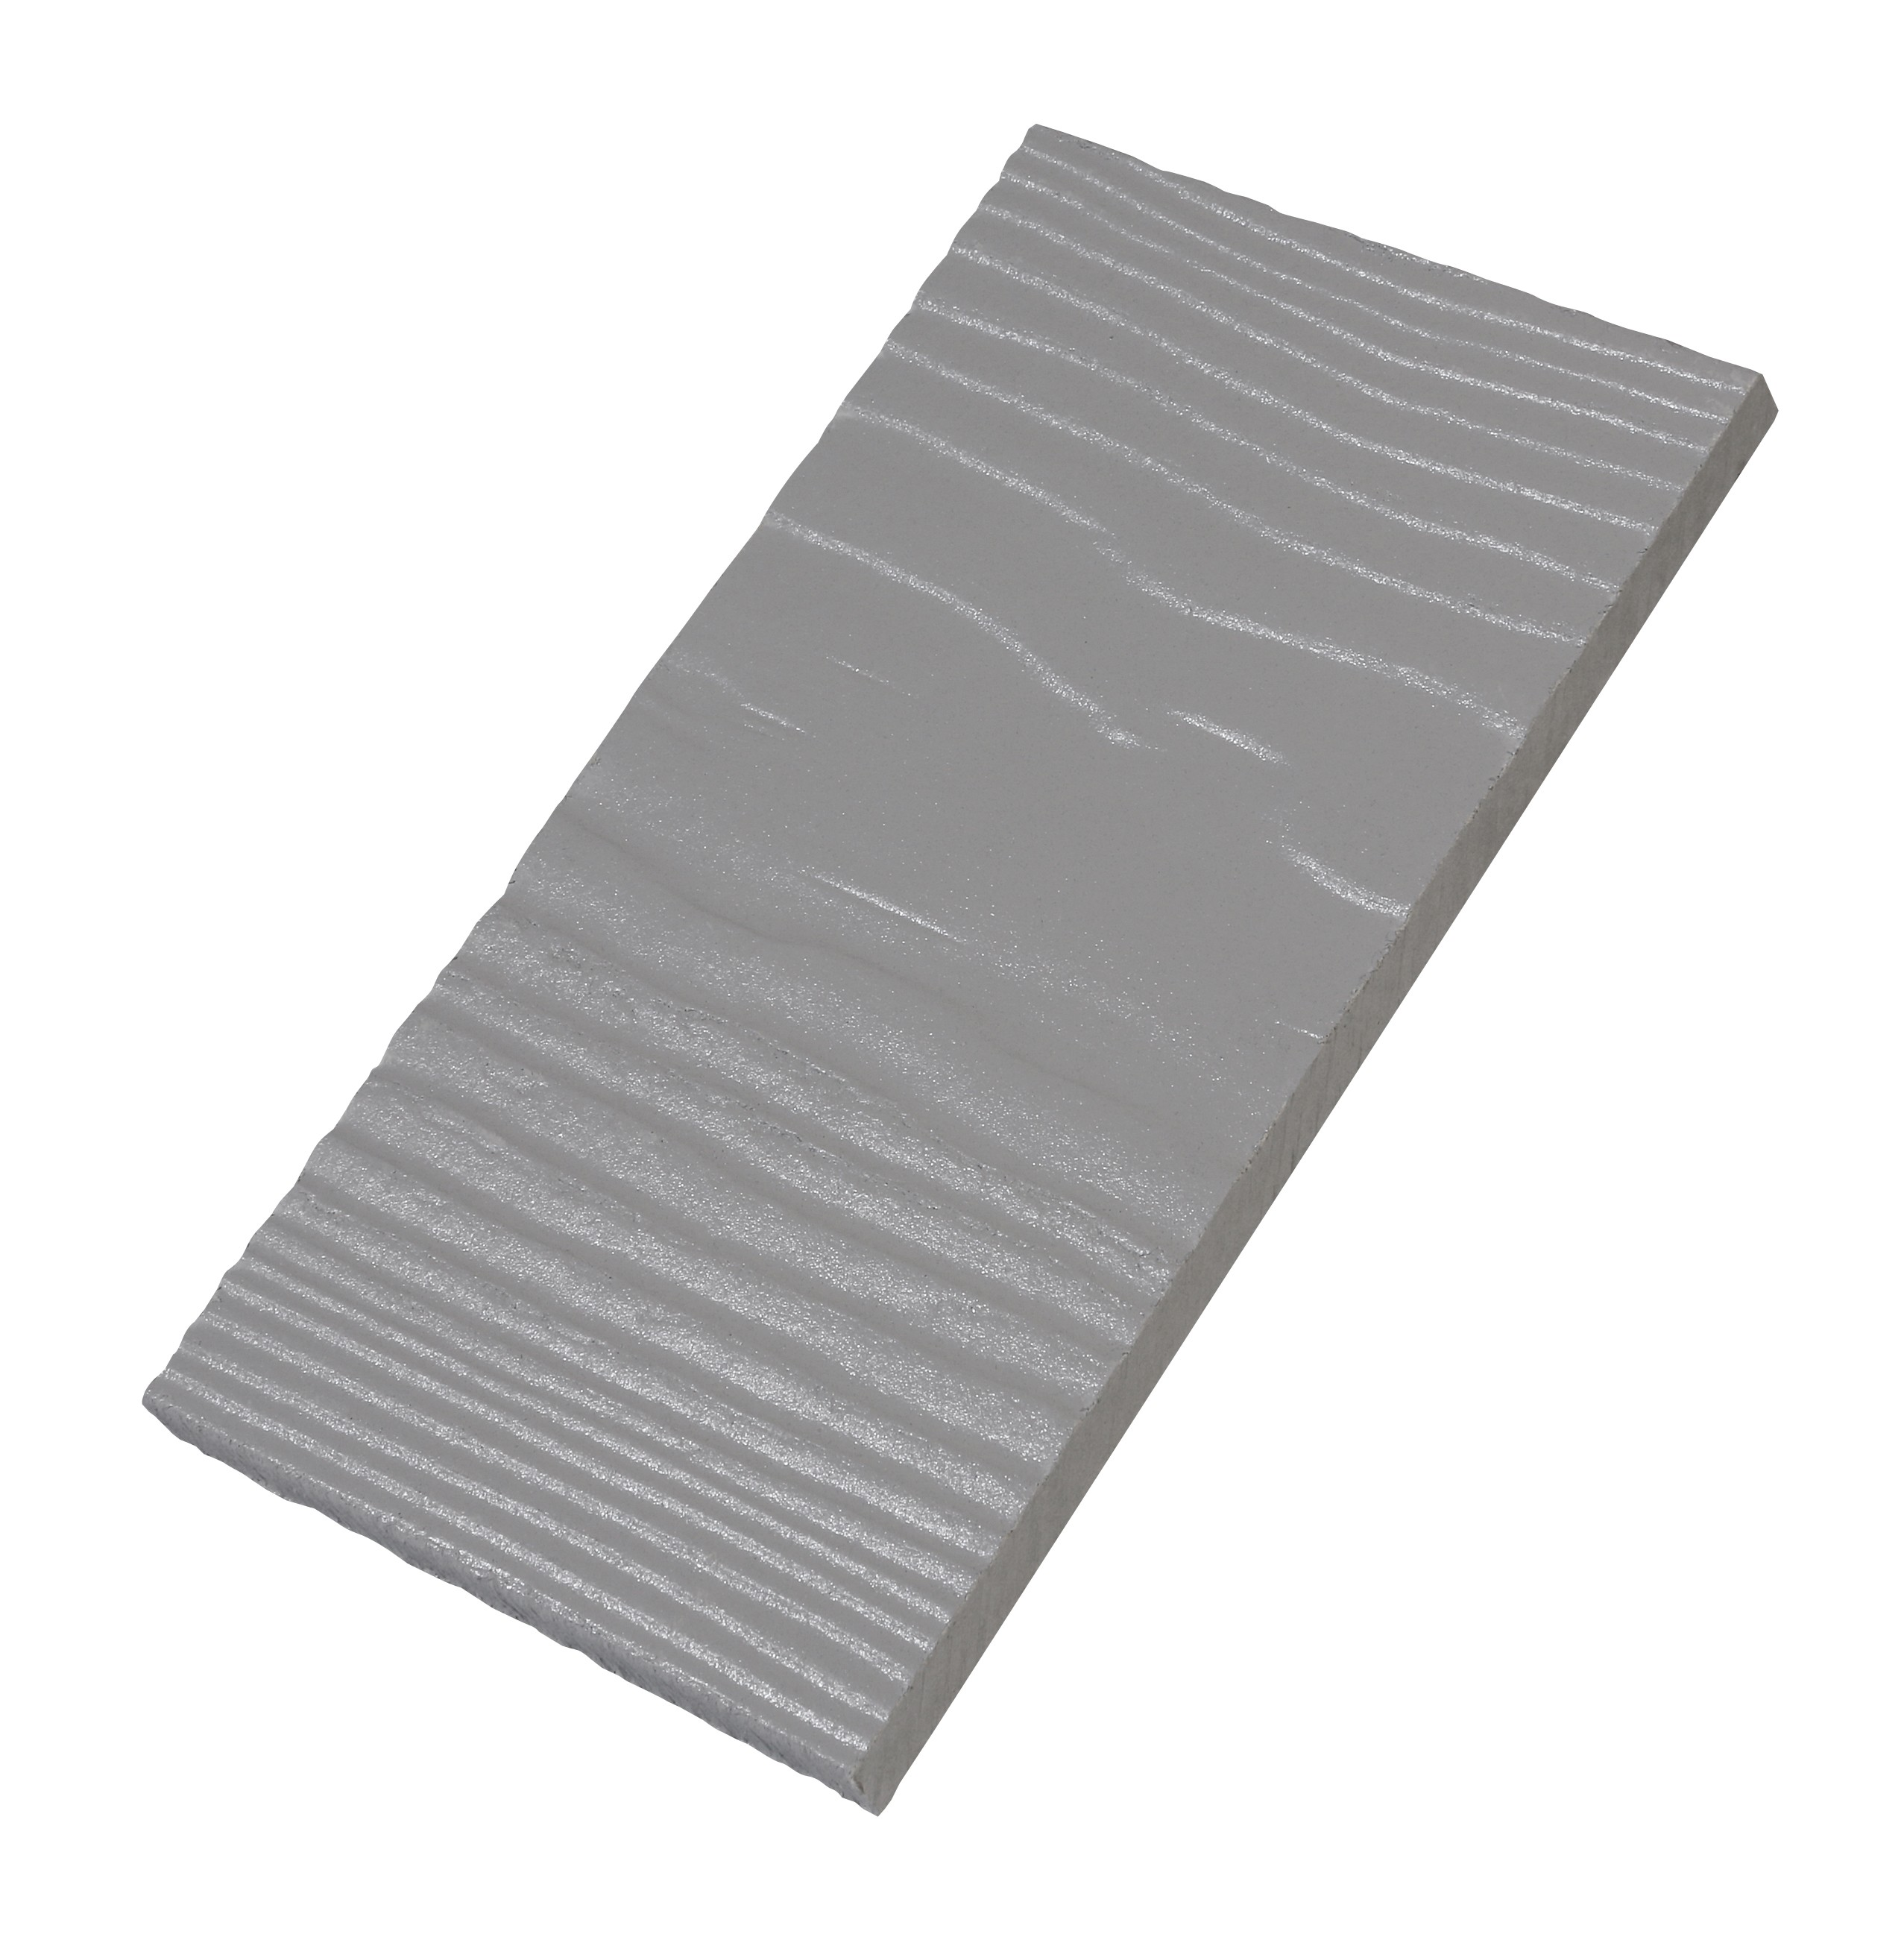 Cedral Lap Weatherboard Cladding - Silver Grey